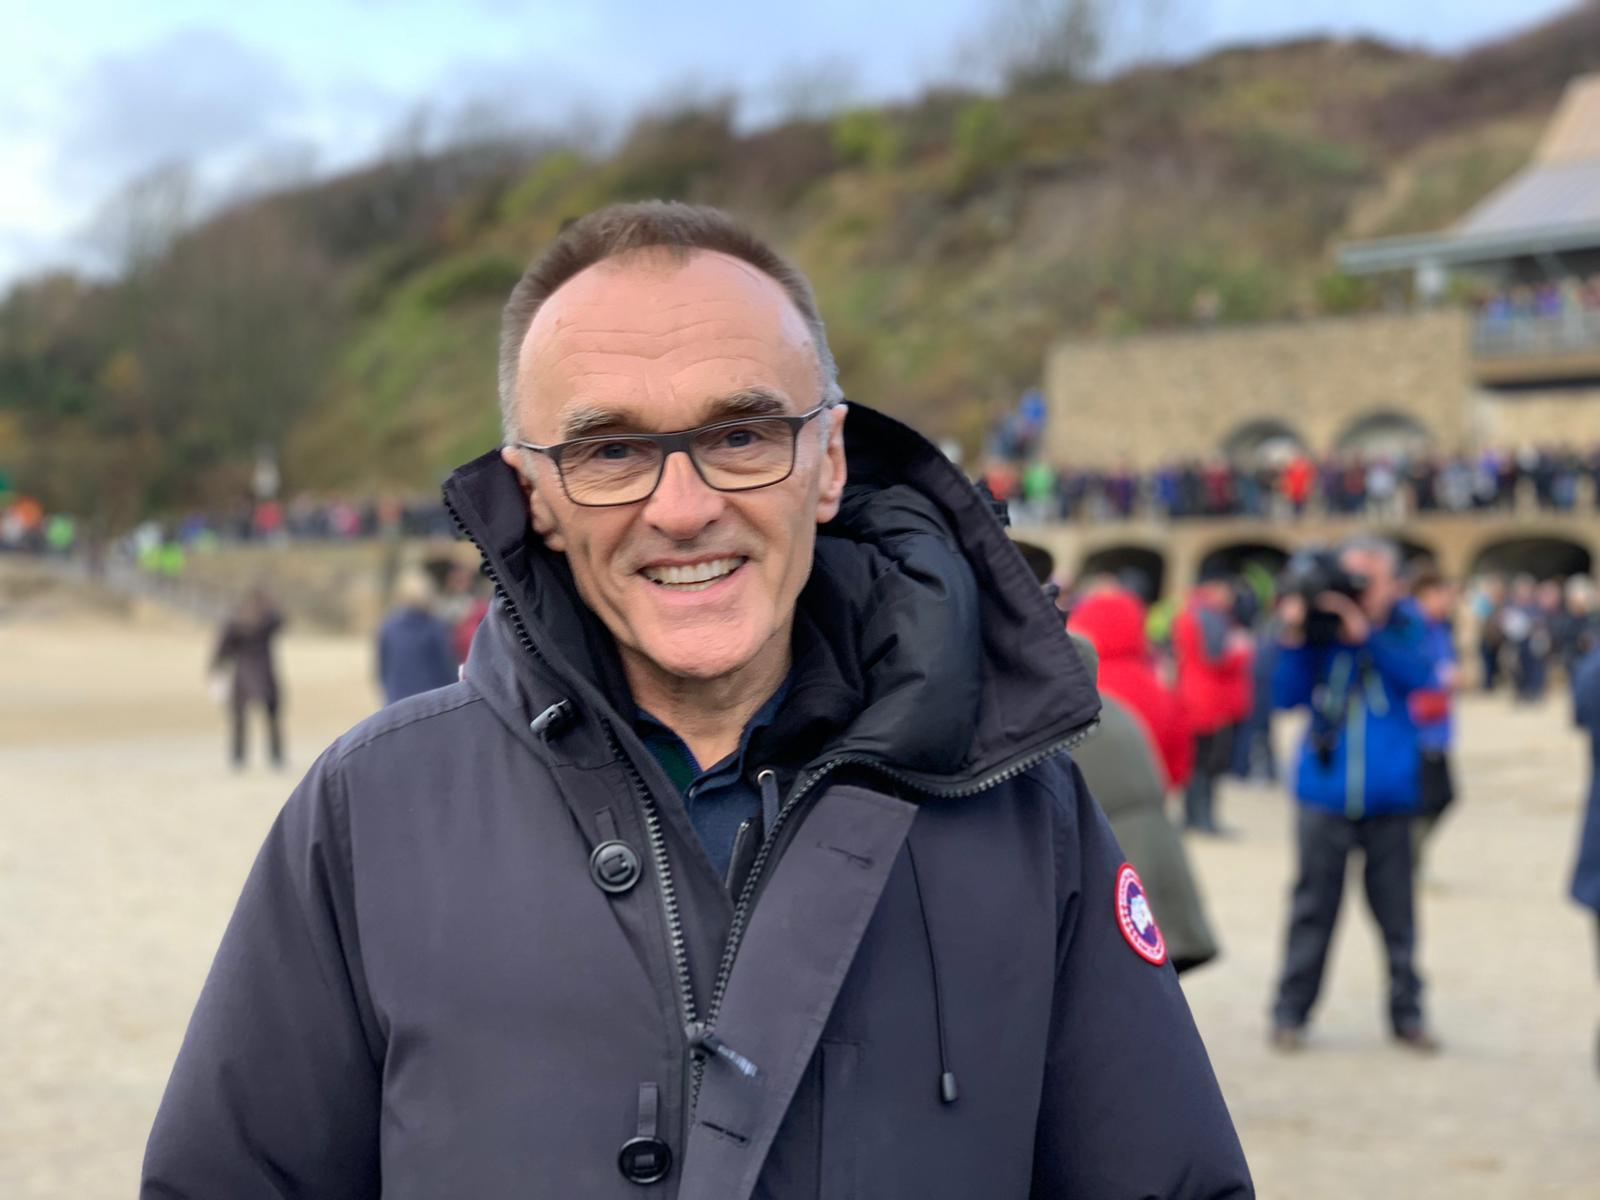 Watch Danny Boyle on Facebook Live from Folkestone image